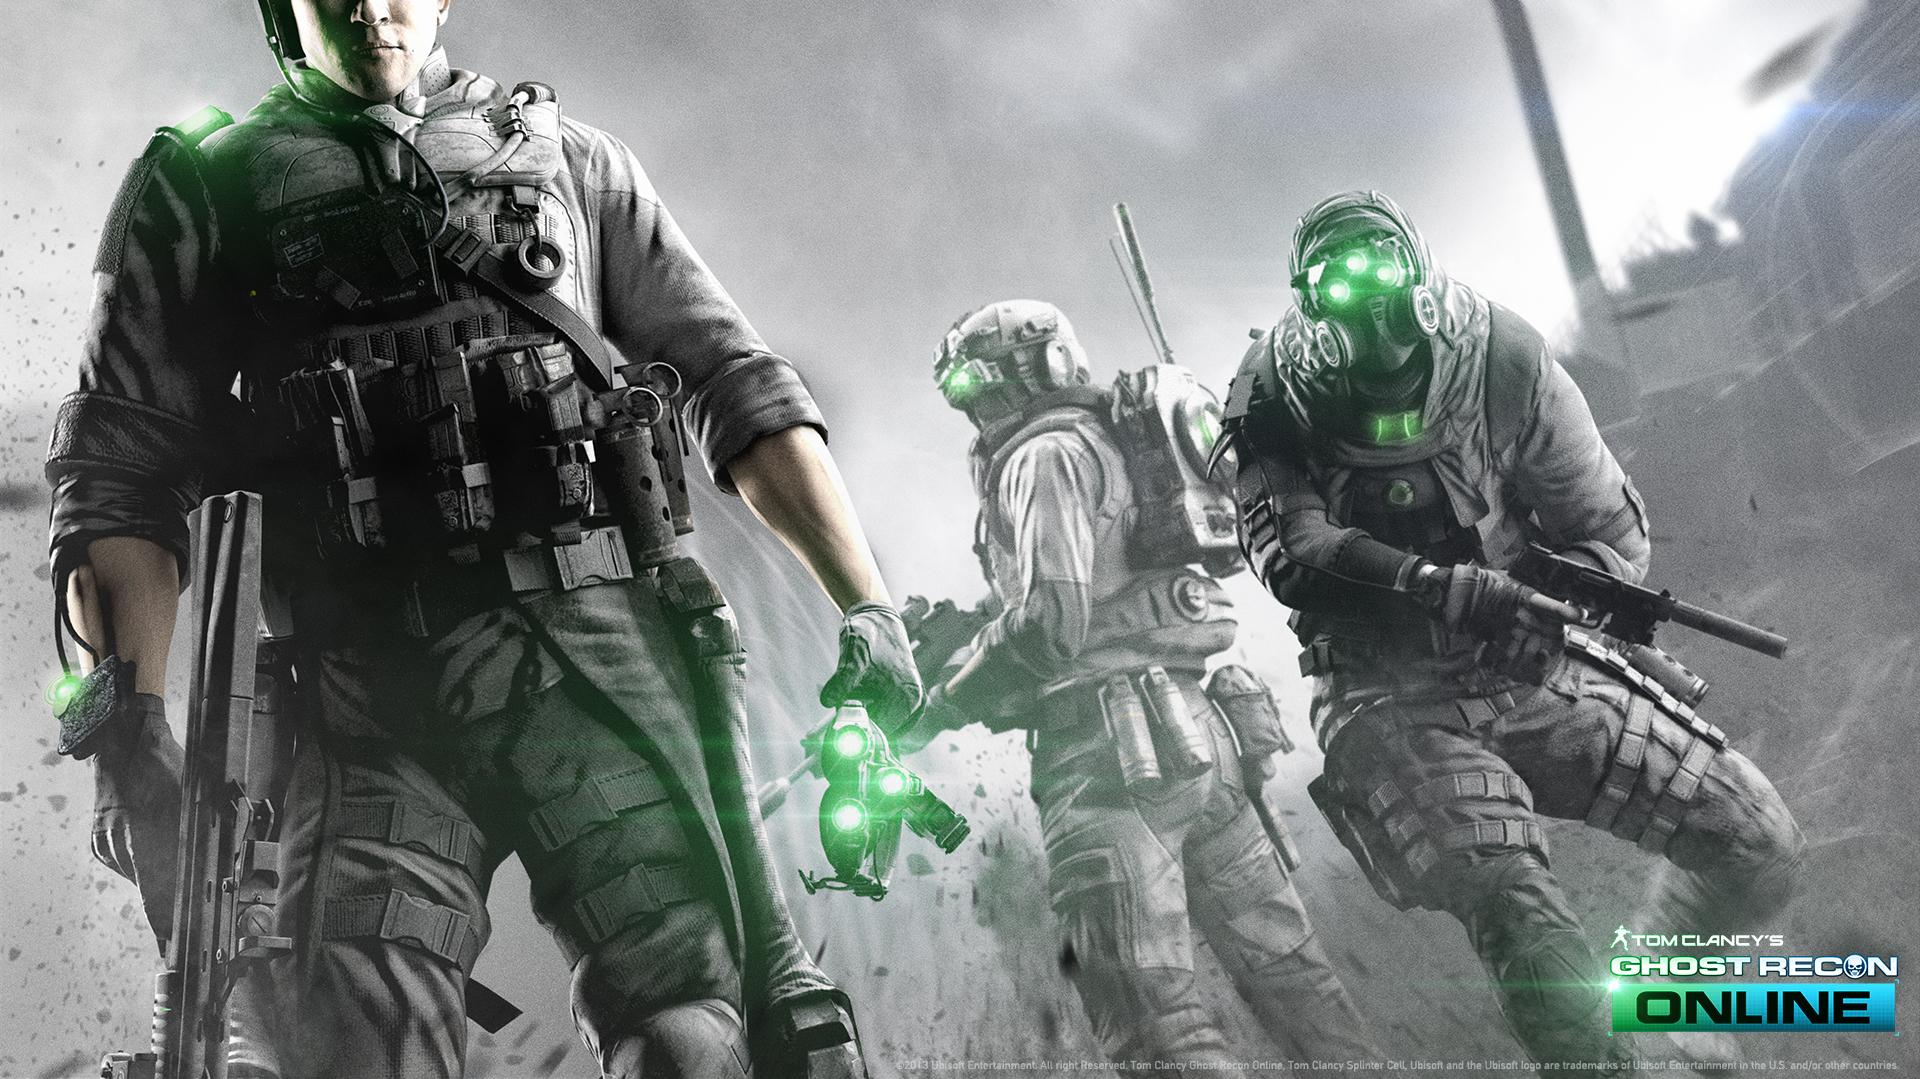 Ghost Recon Online - Splinter Cell Pack Trailer